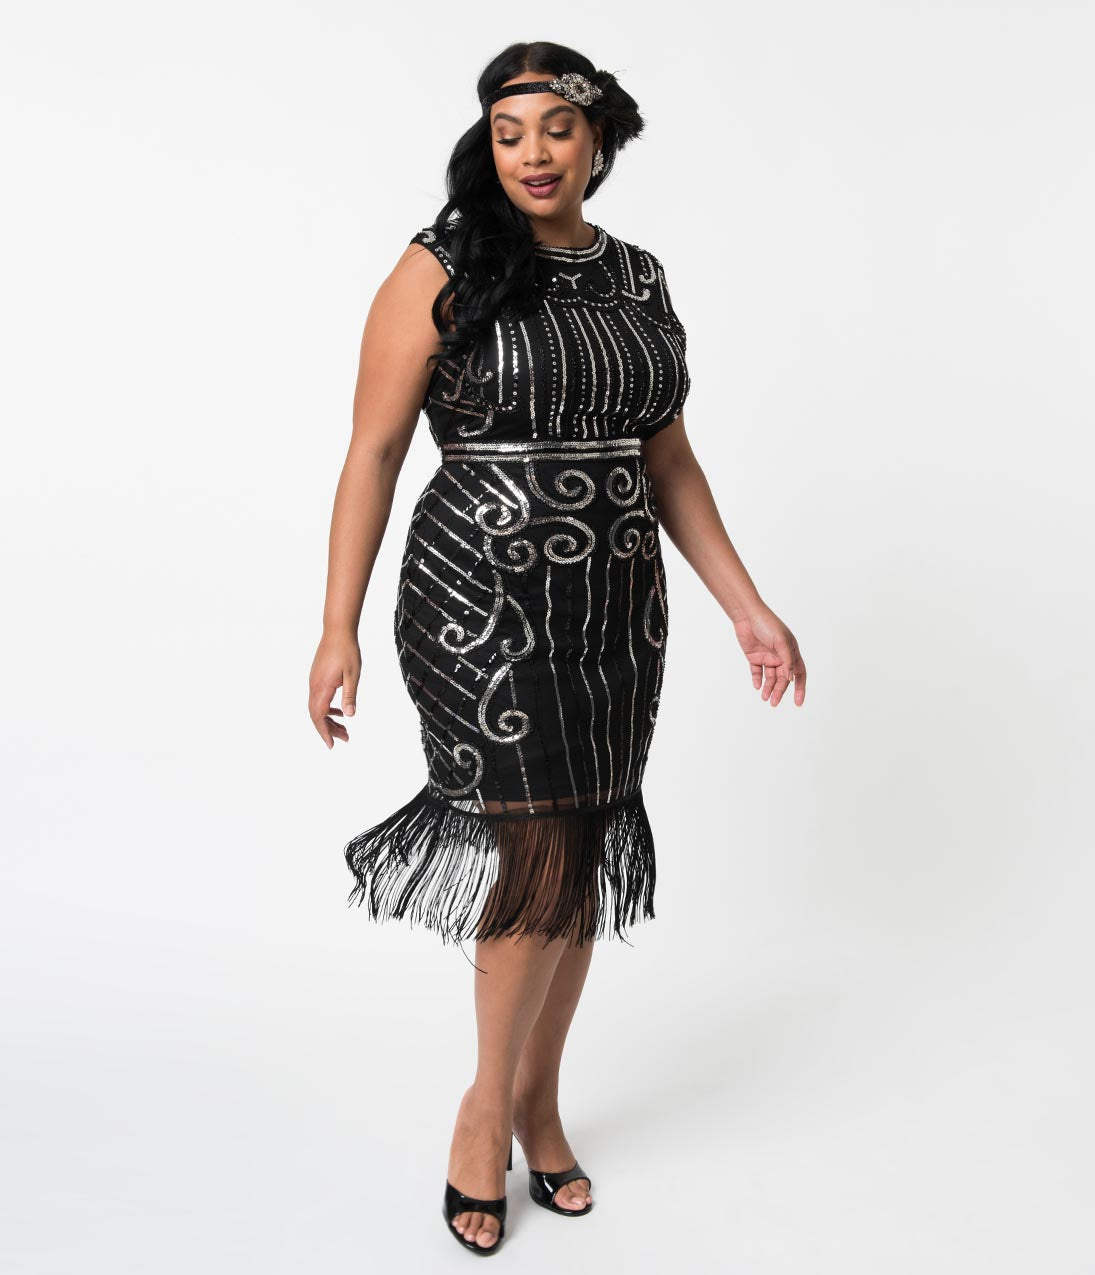 39c9cfd5b8bd8c Unique Vintage Plus Size 1920s Style Black & Silver Beaded Avignon Flapper  Dress